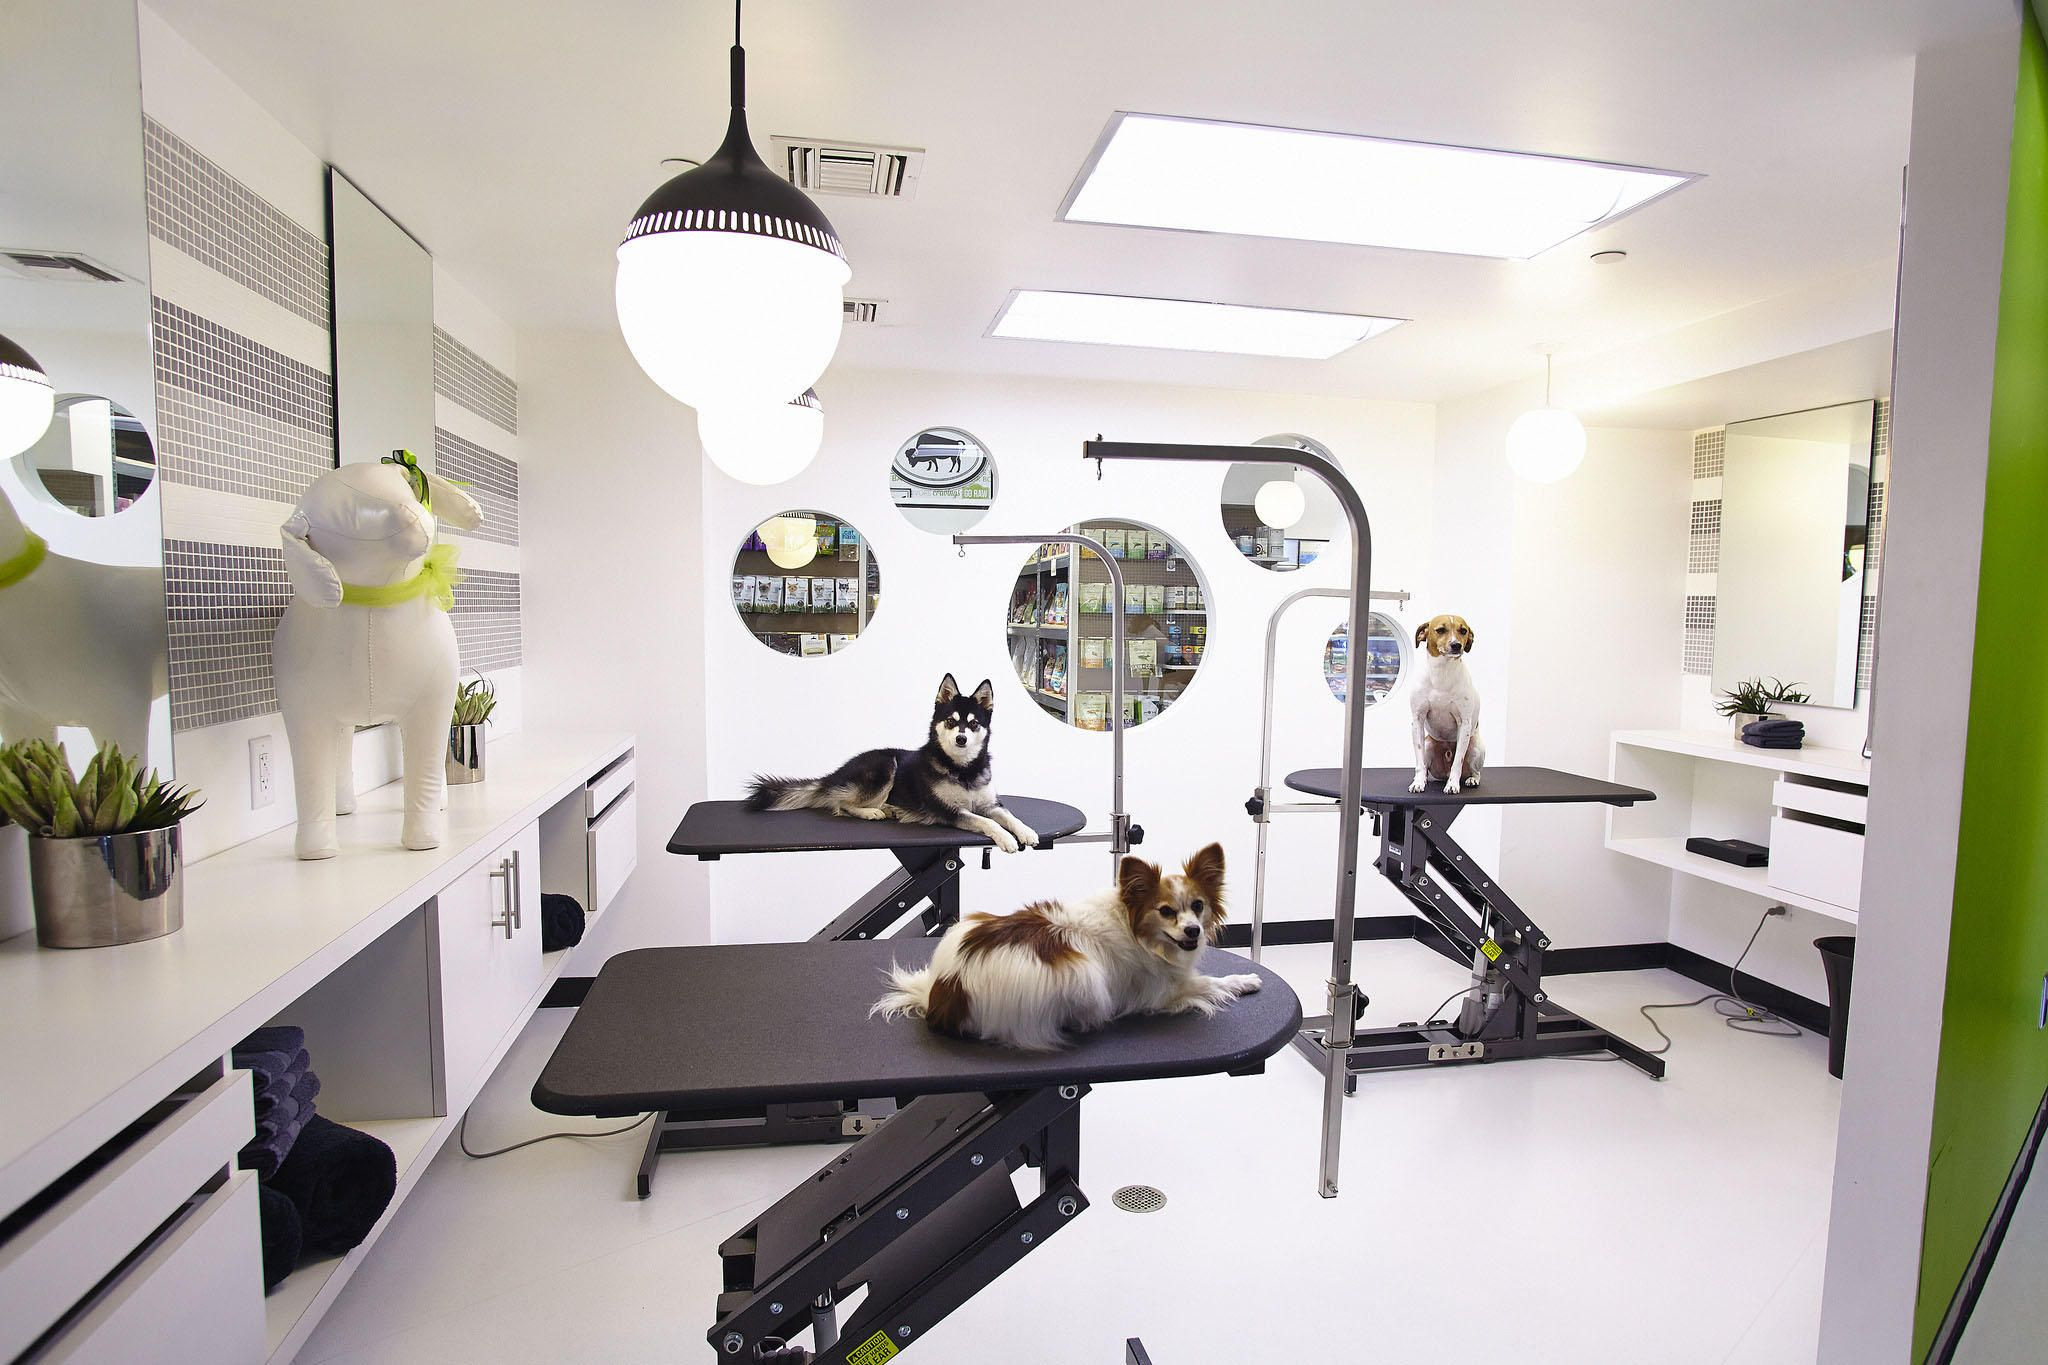 Pooch Pampering Beverly Hills Has Gone To The Dogs Dog Grooming Salons Dog Grooming Shop Pet Grooming Business